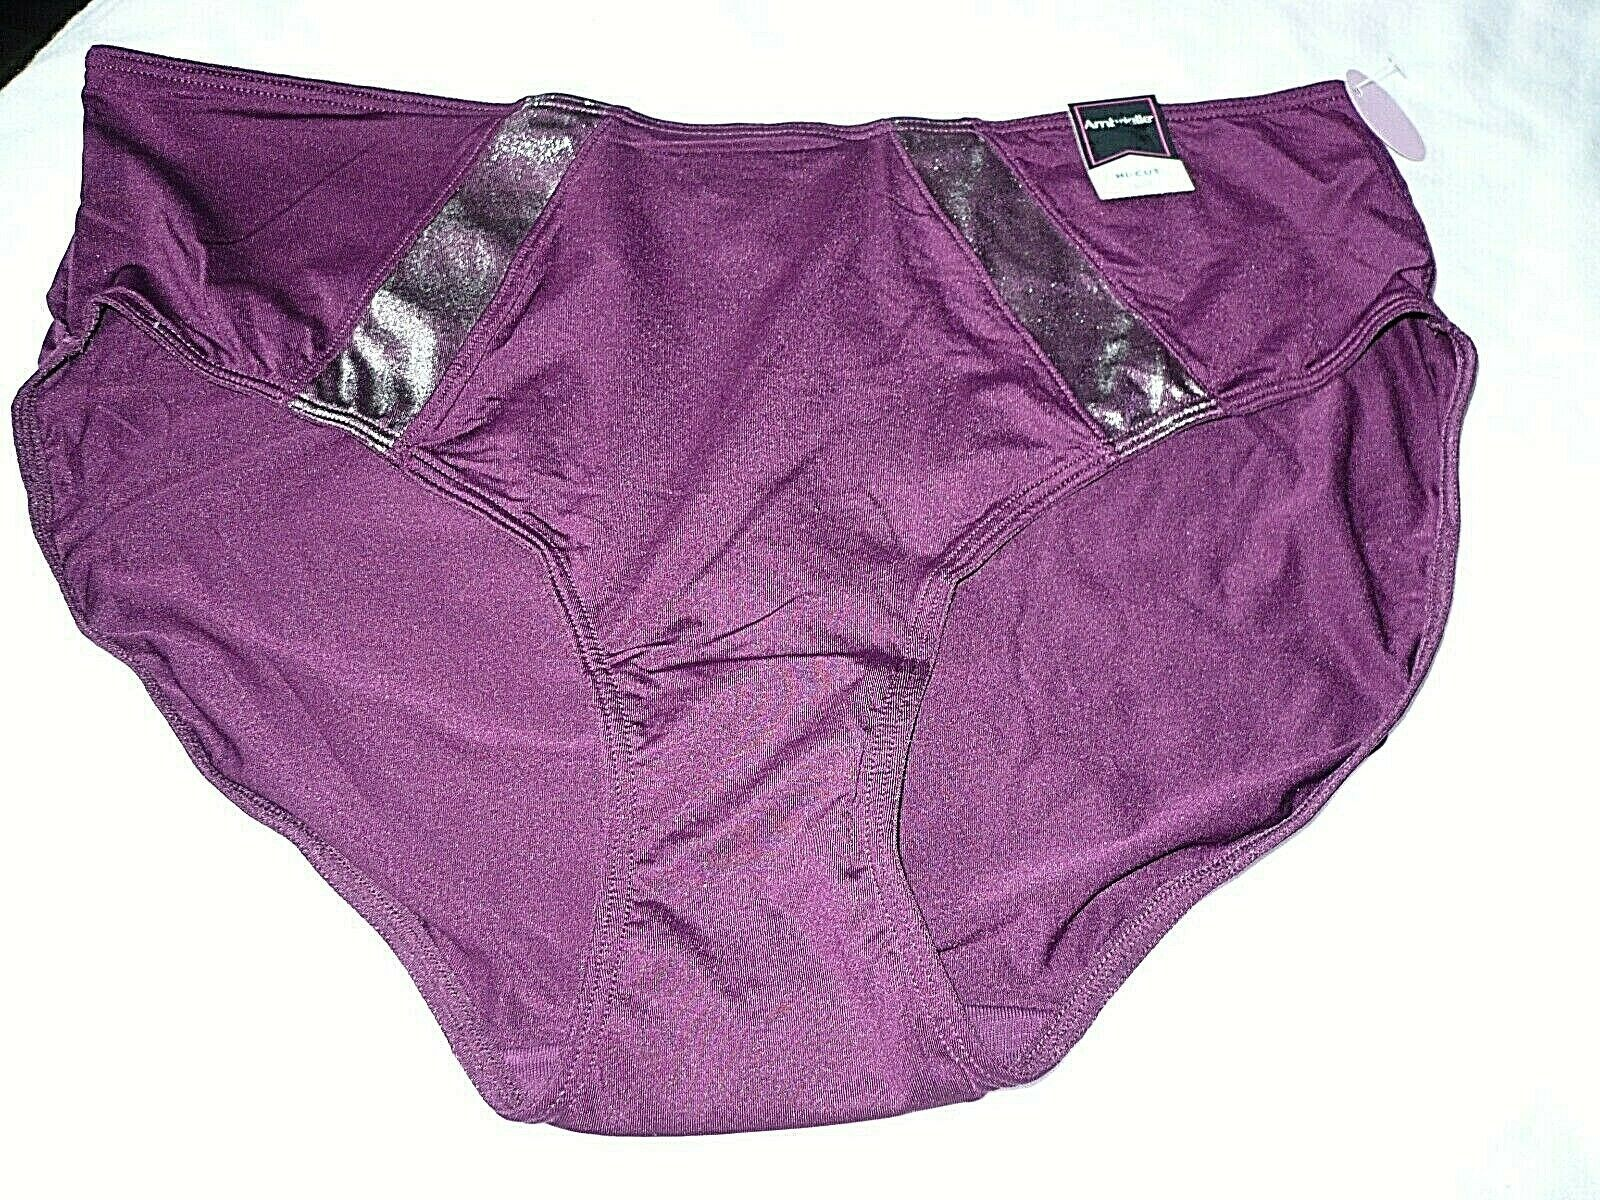 Primary image for Ambrielle Women's Hi-Cut Panty Size Medium/6  Pickled Beet 1 Pair Shimmer Insets